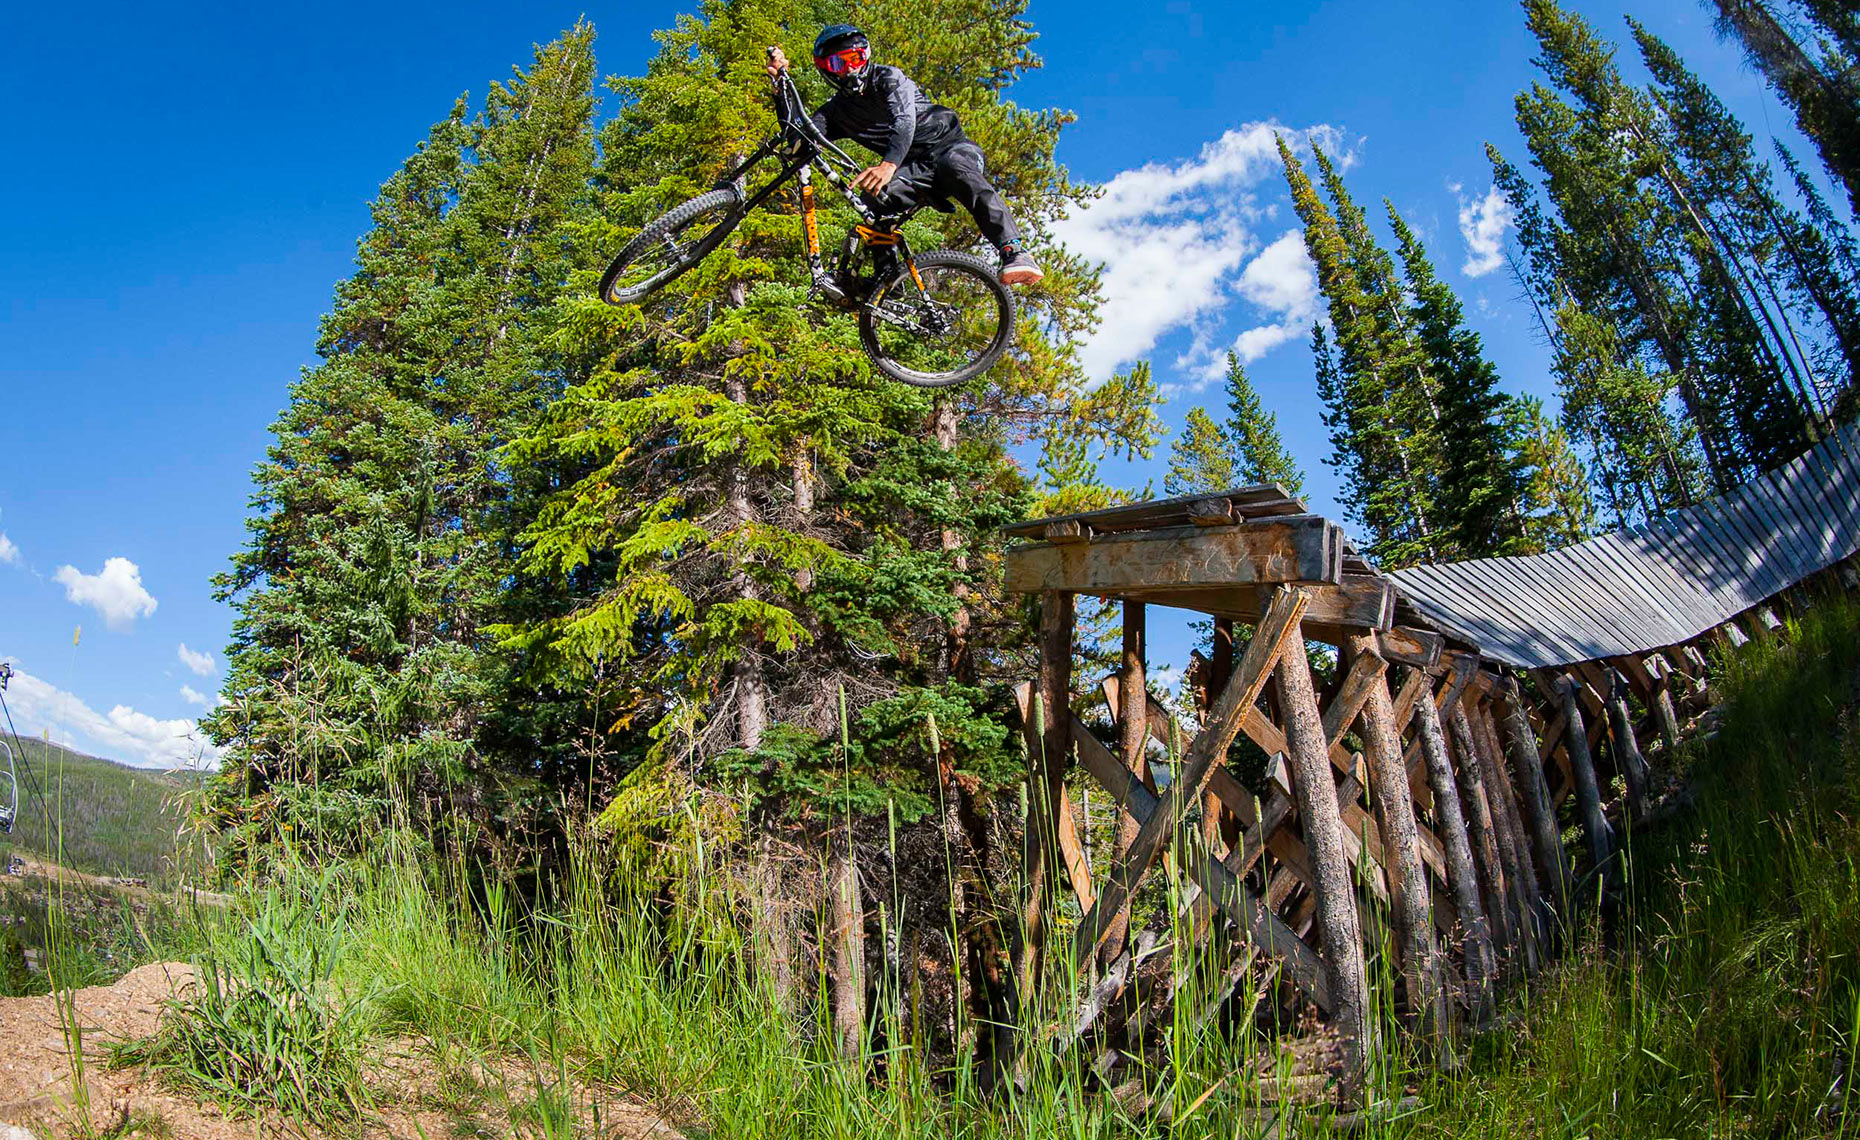 20170825-Trestle-Bike-Park-Chris-Wellhausen-1386